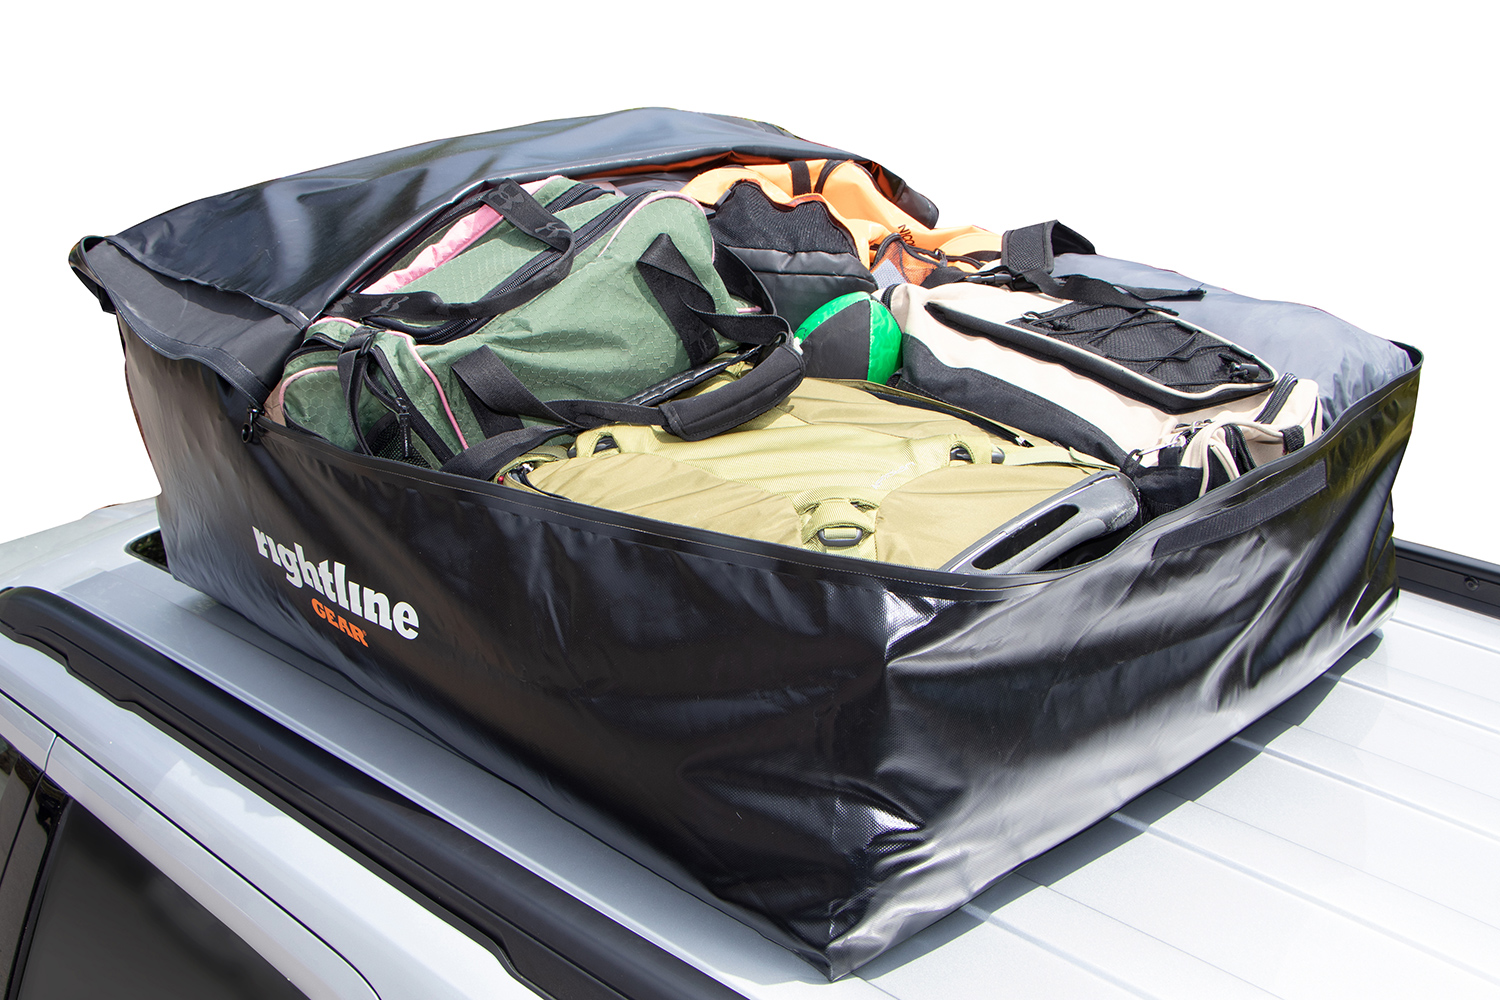 Rightline Gear Sport 3 Car Top Carrier Free Shipping